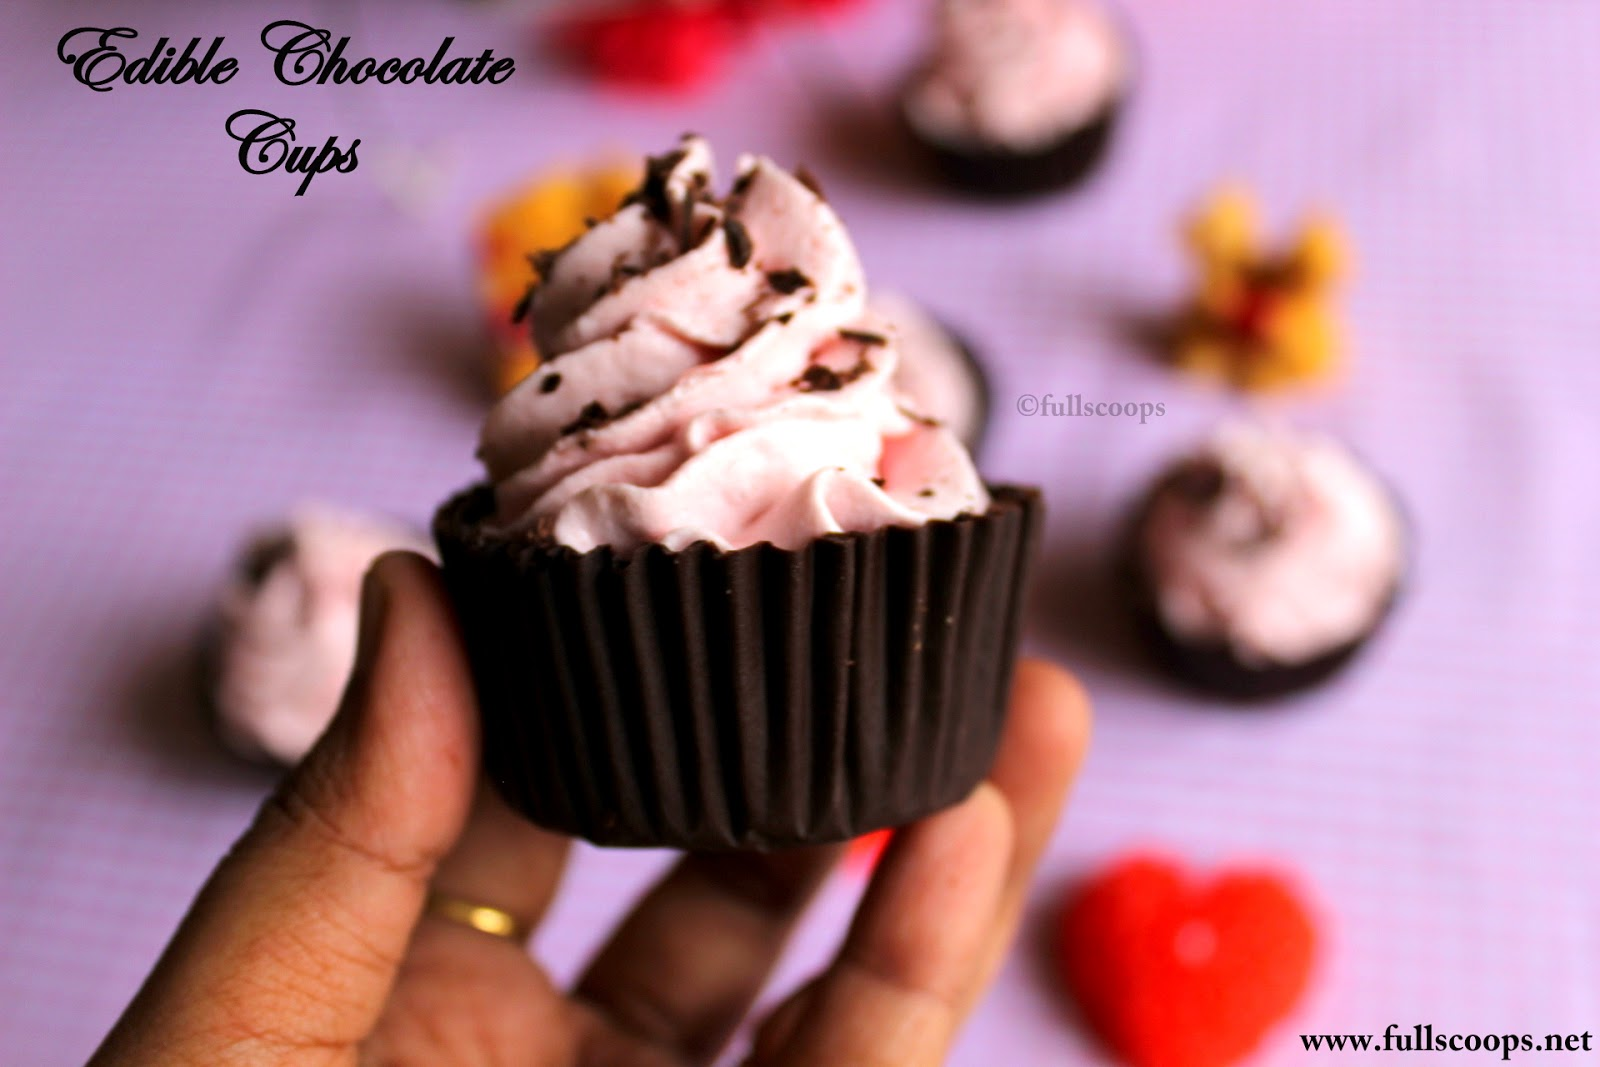 edible chocolate cups with eggless strawberry mousse scoops